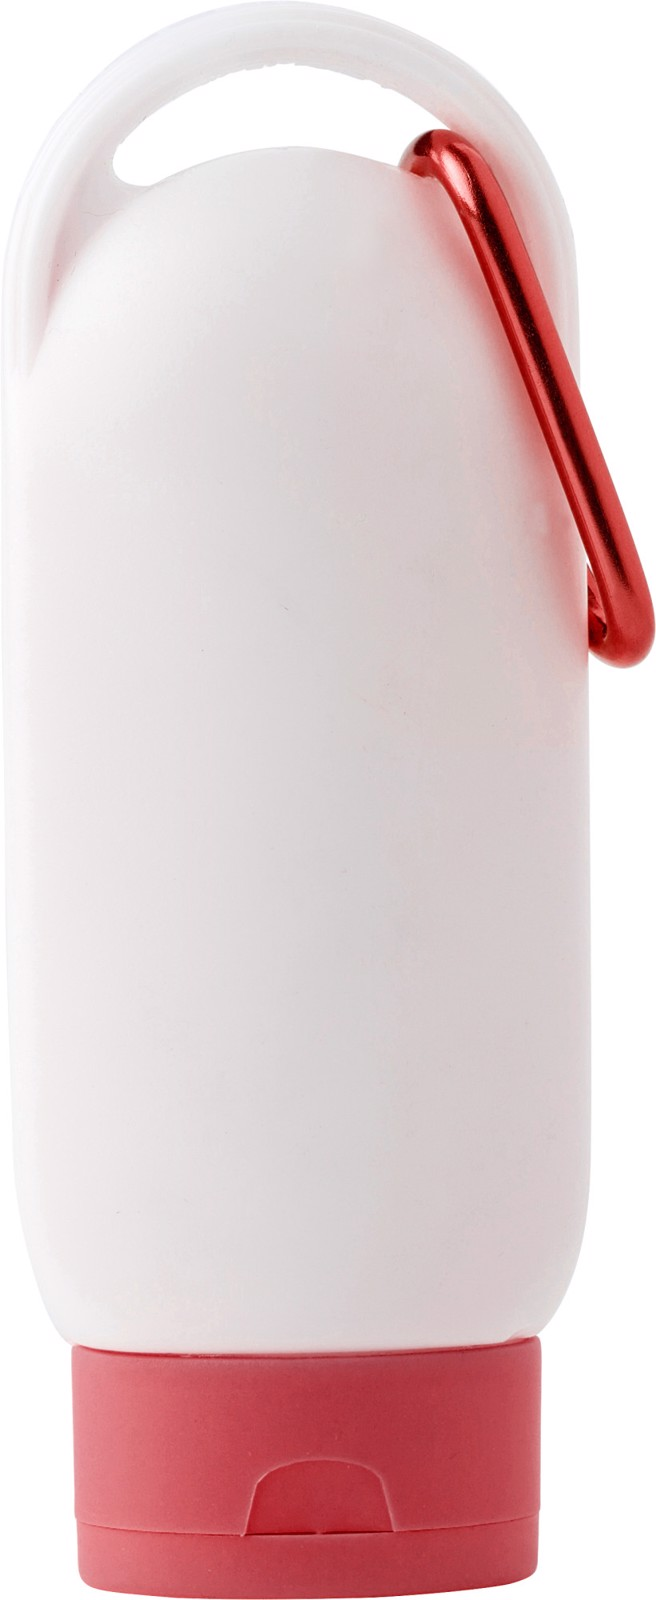 PE sunscreen lotion bottle - Red